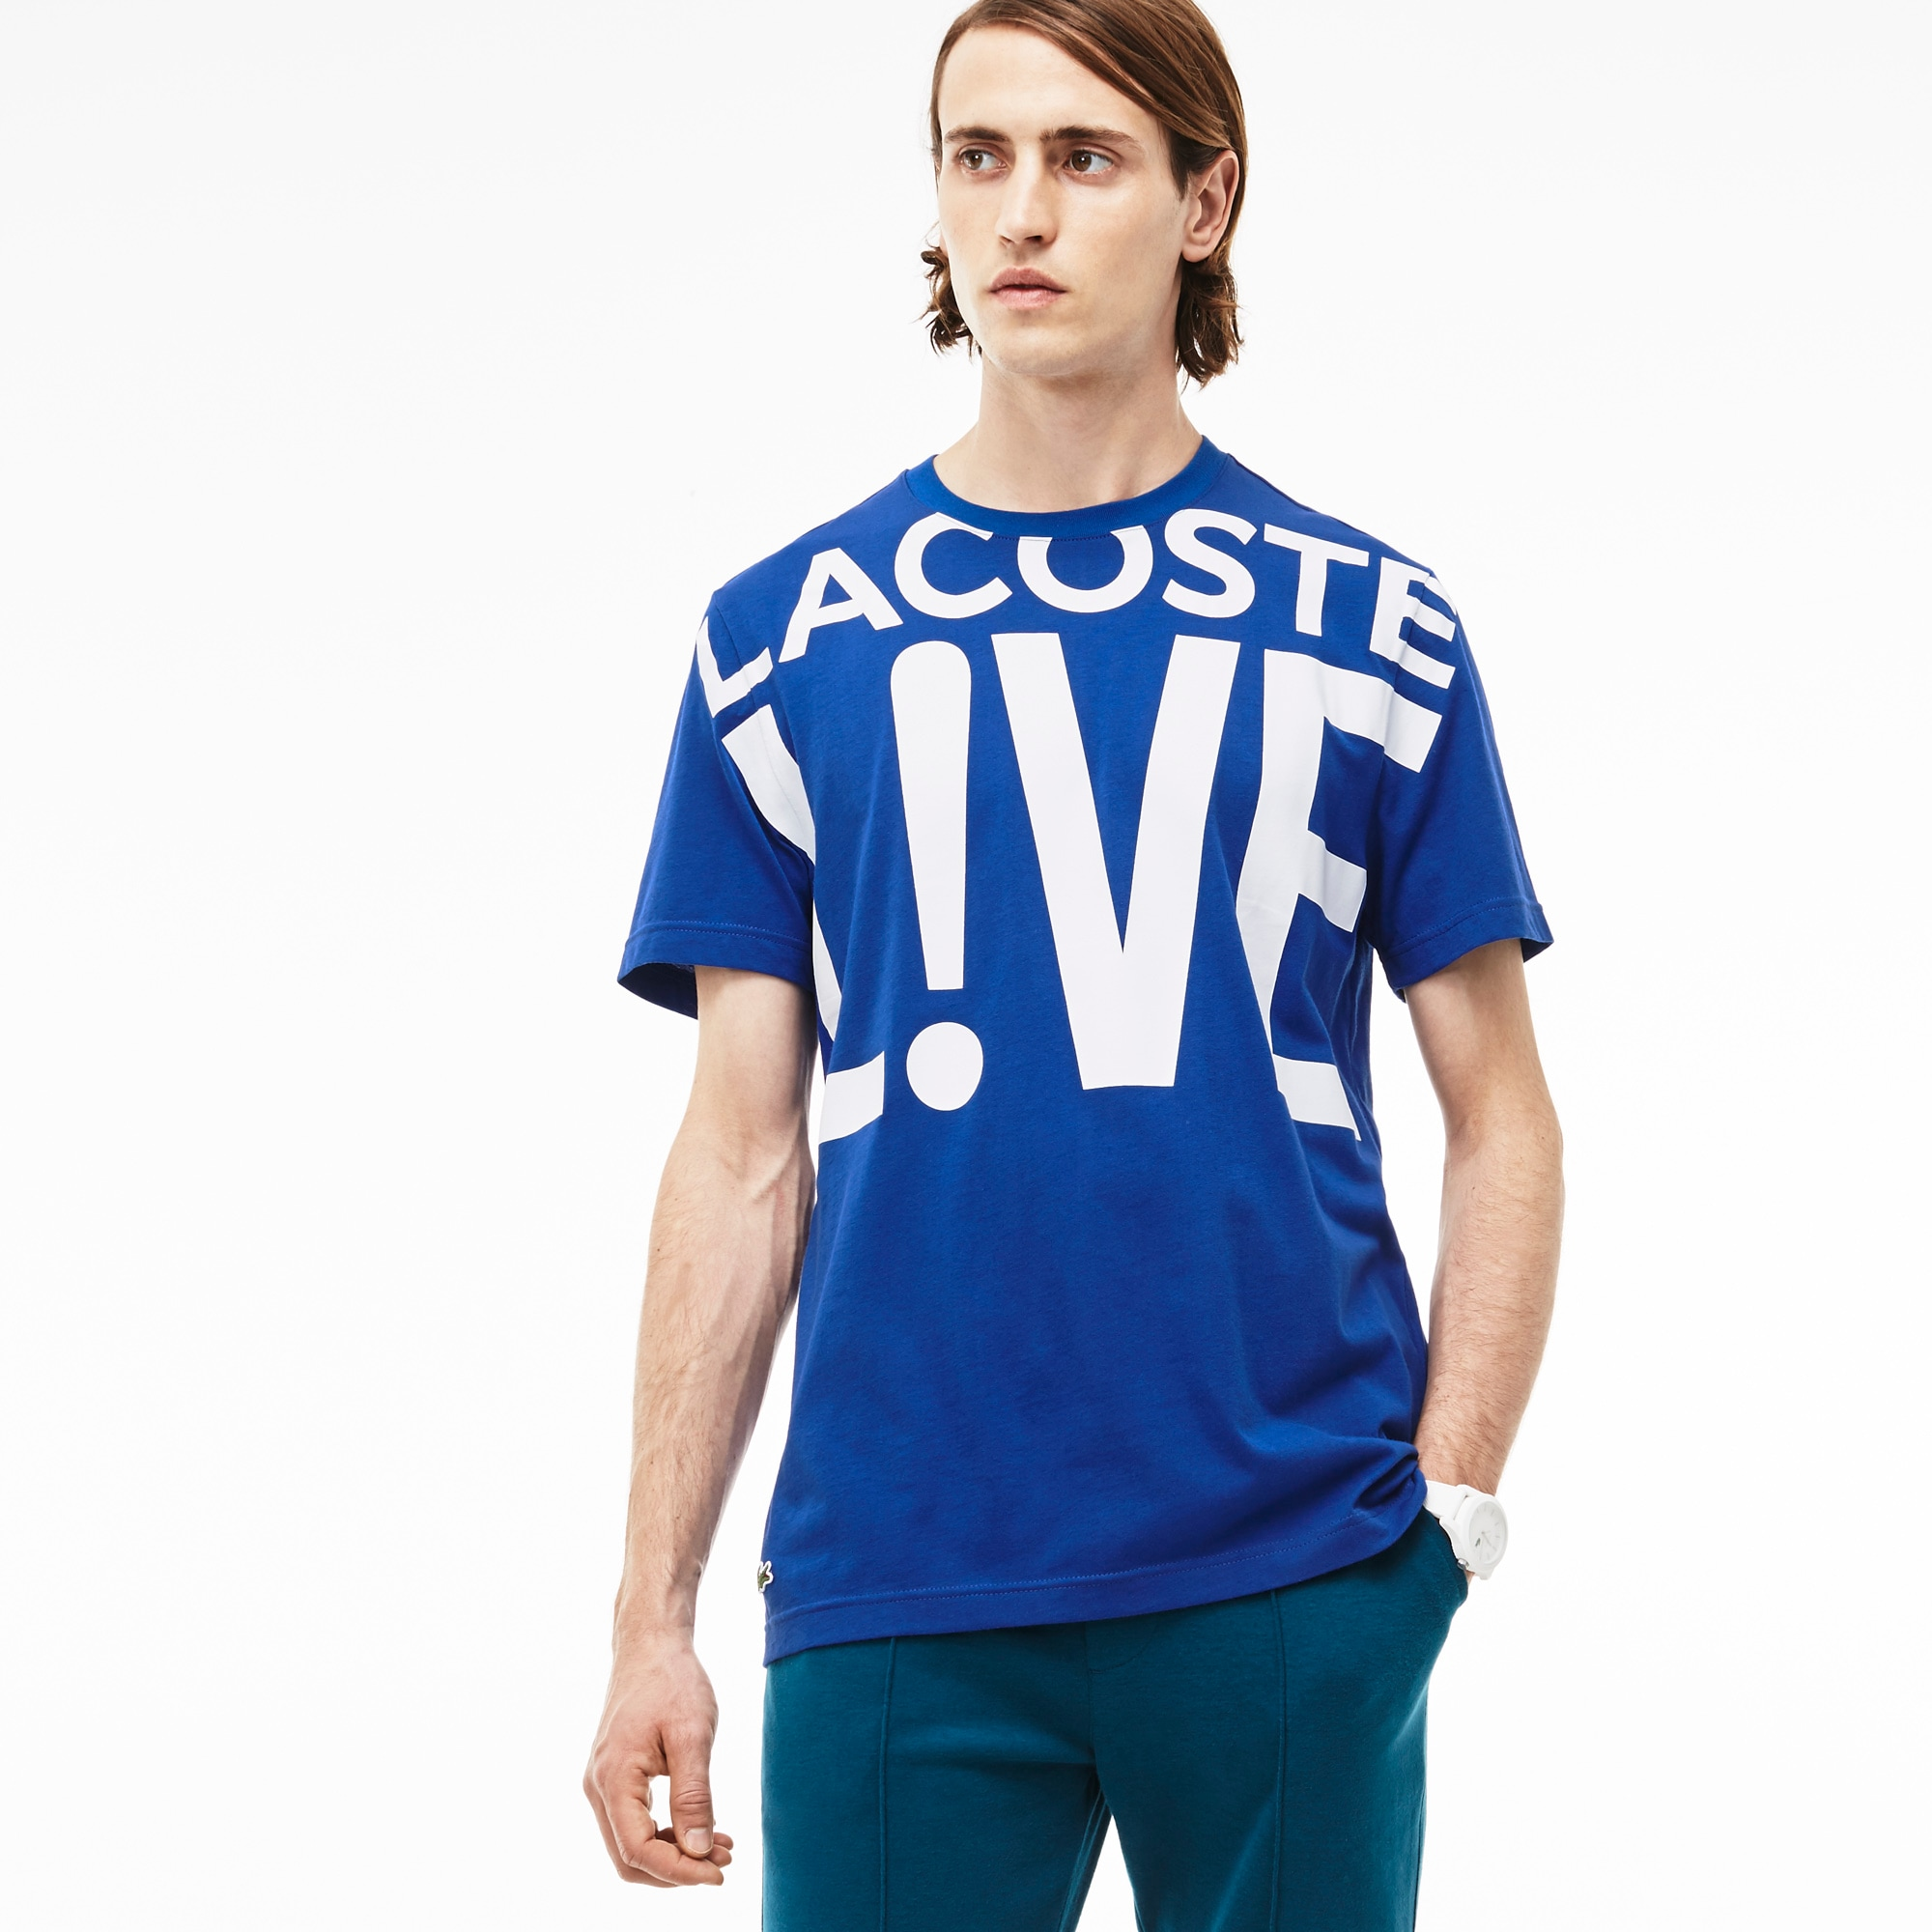 Ultra-slim fit crew neck Lacoste LIVE T-shirt with print